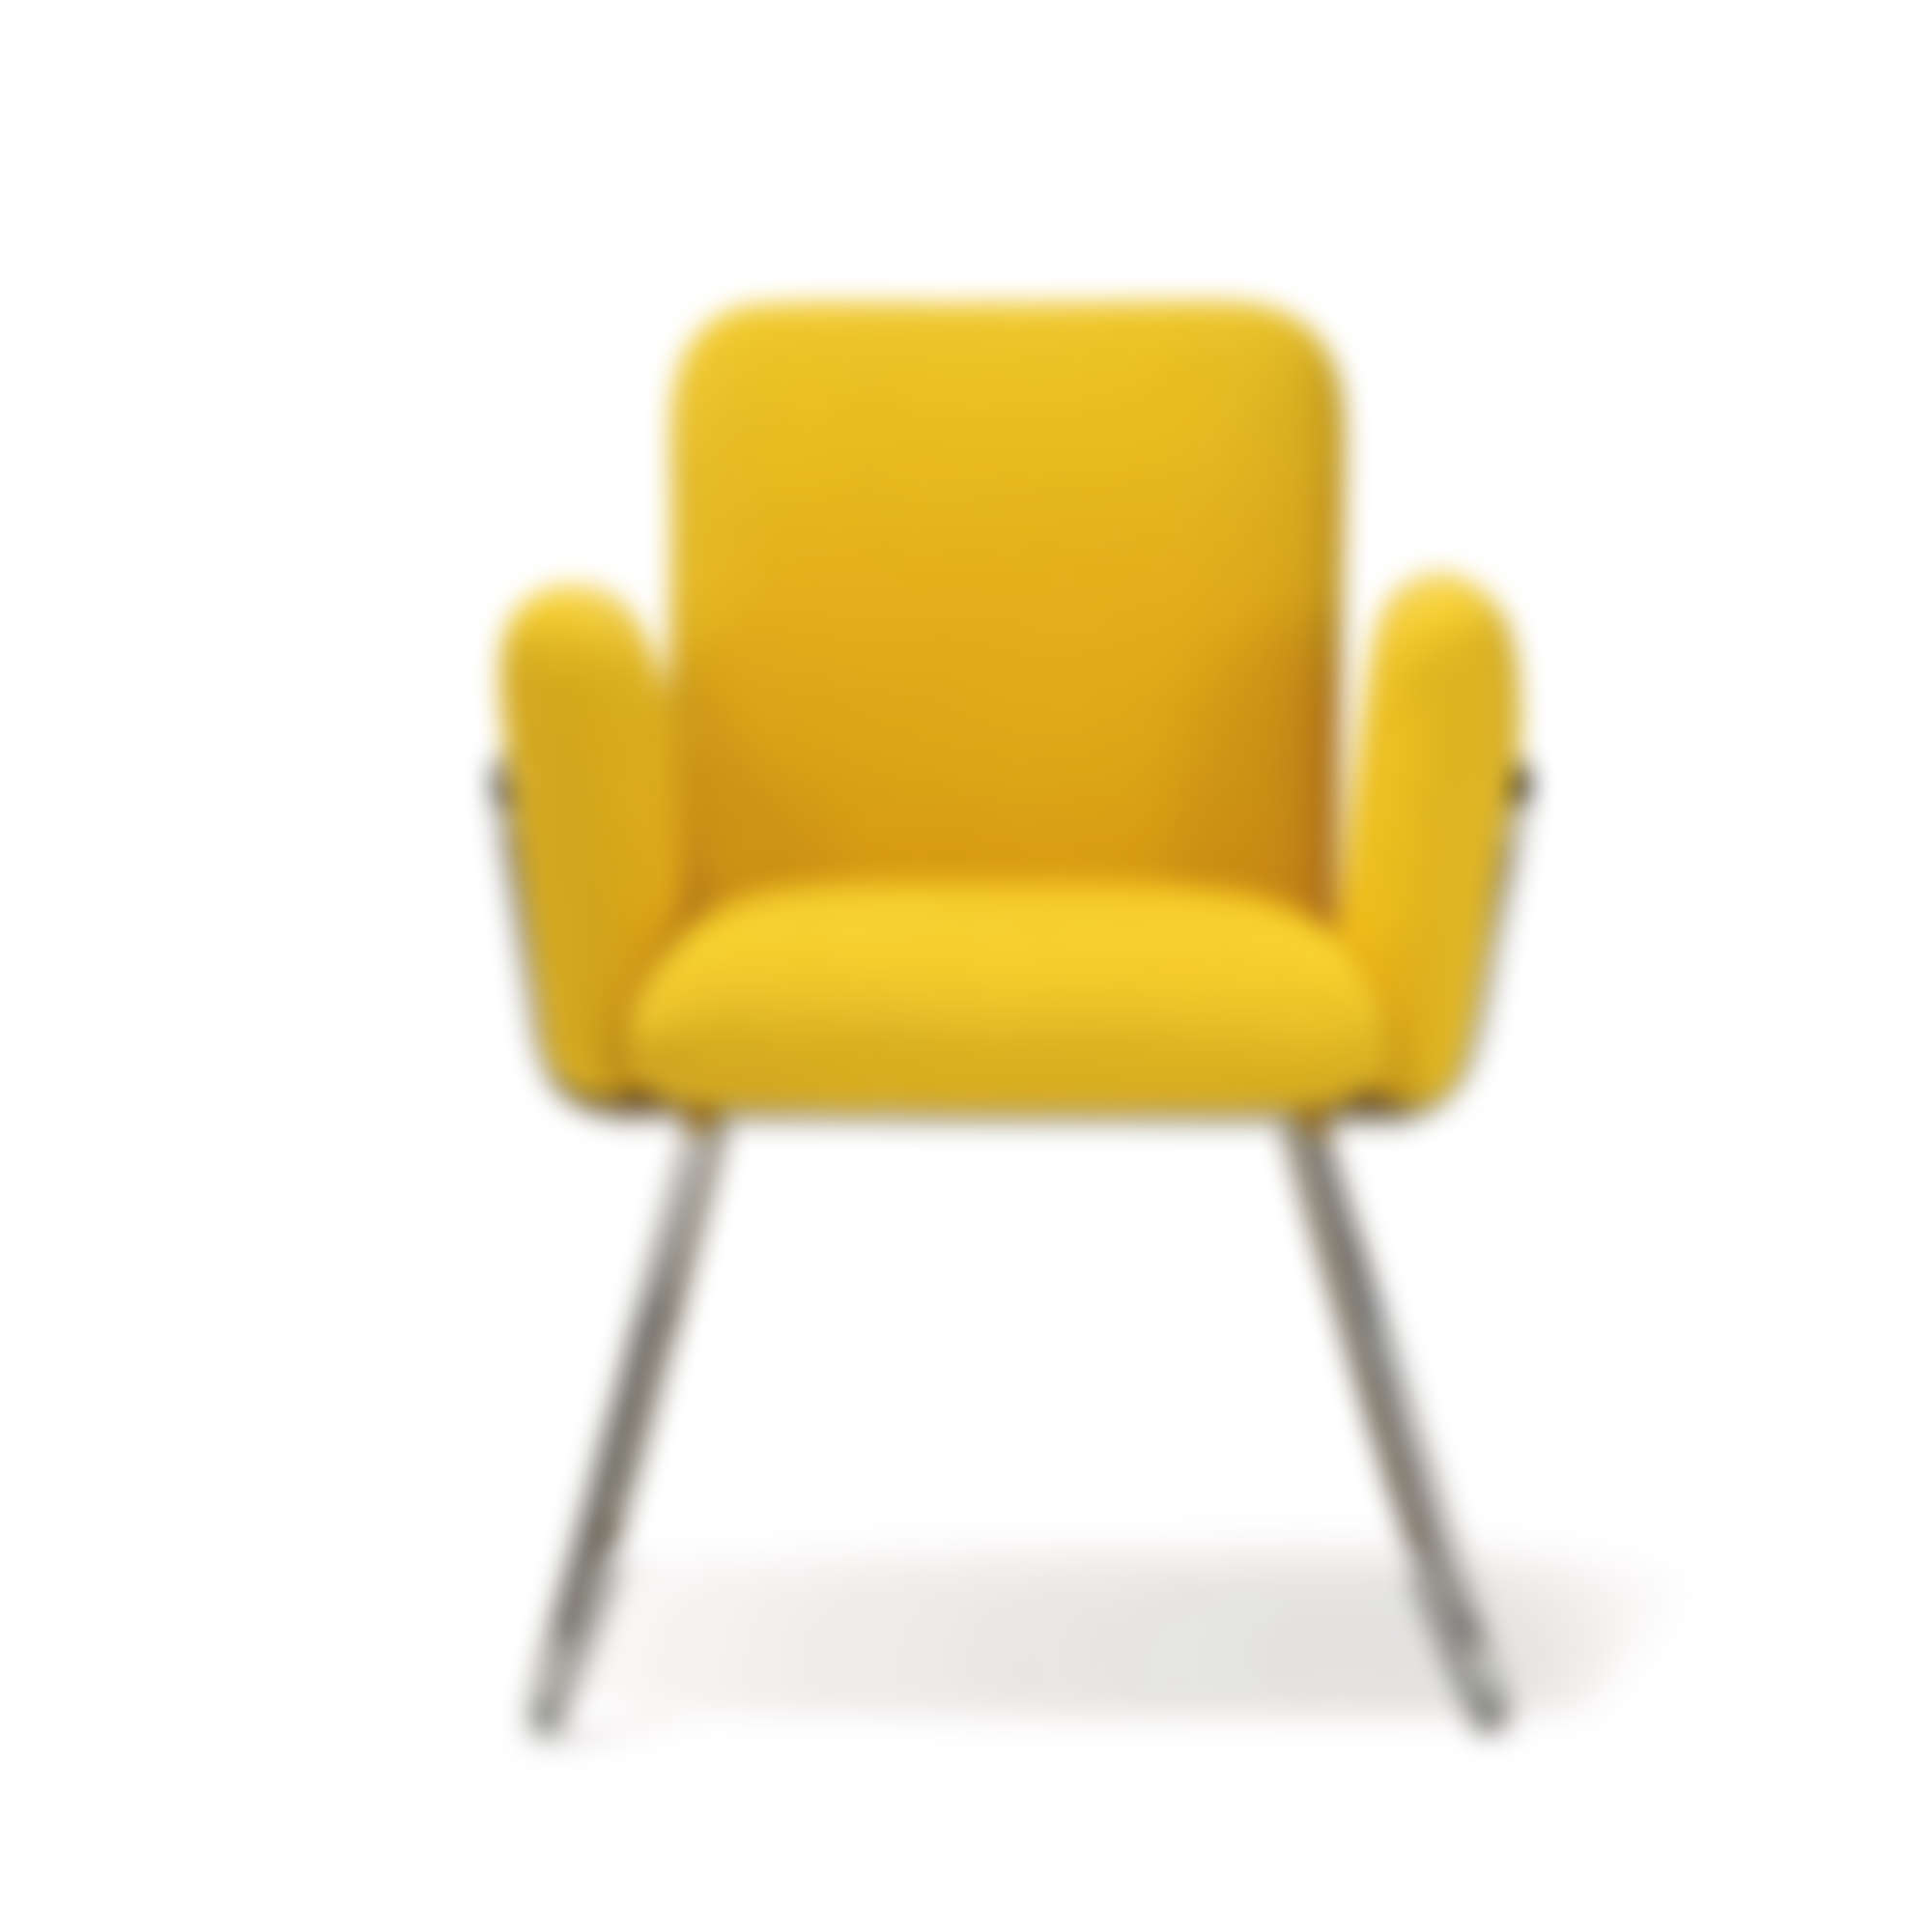 living-contemporary-slurp-yellow-upholstered-dining-chair-by-adrenalina